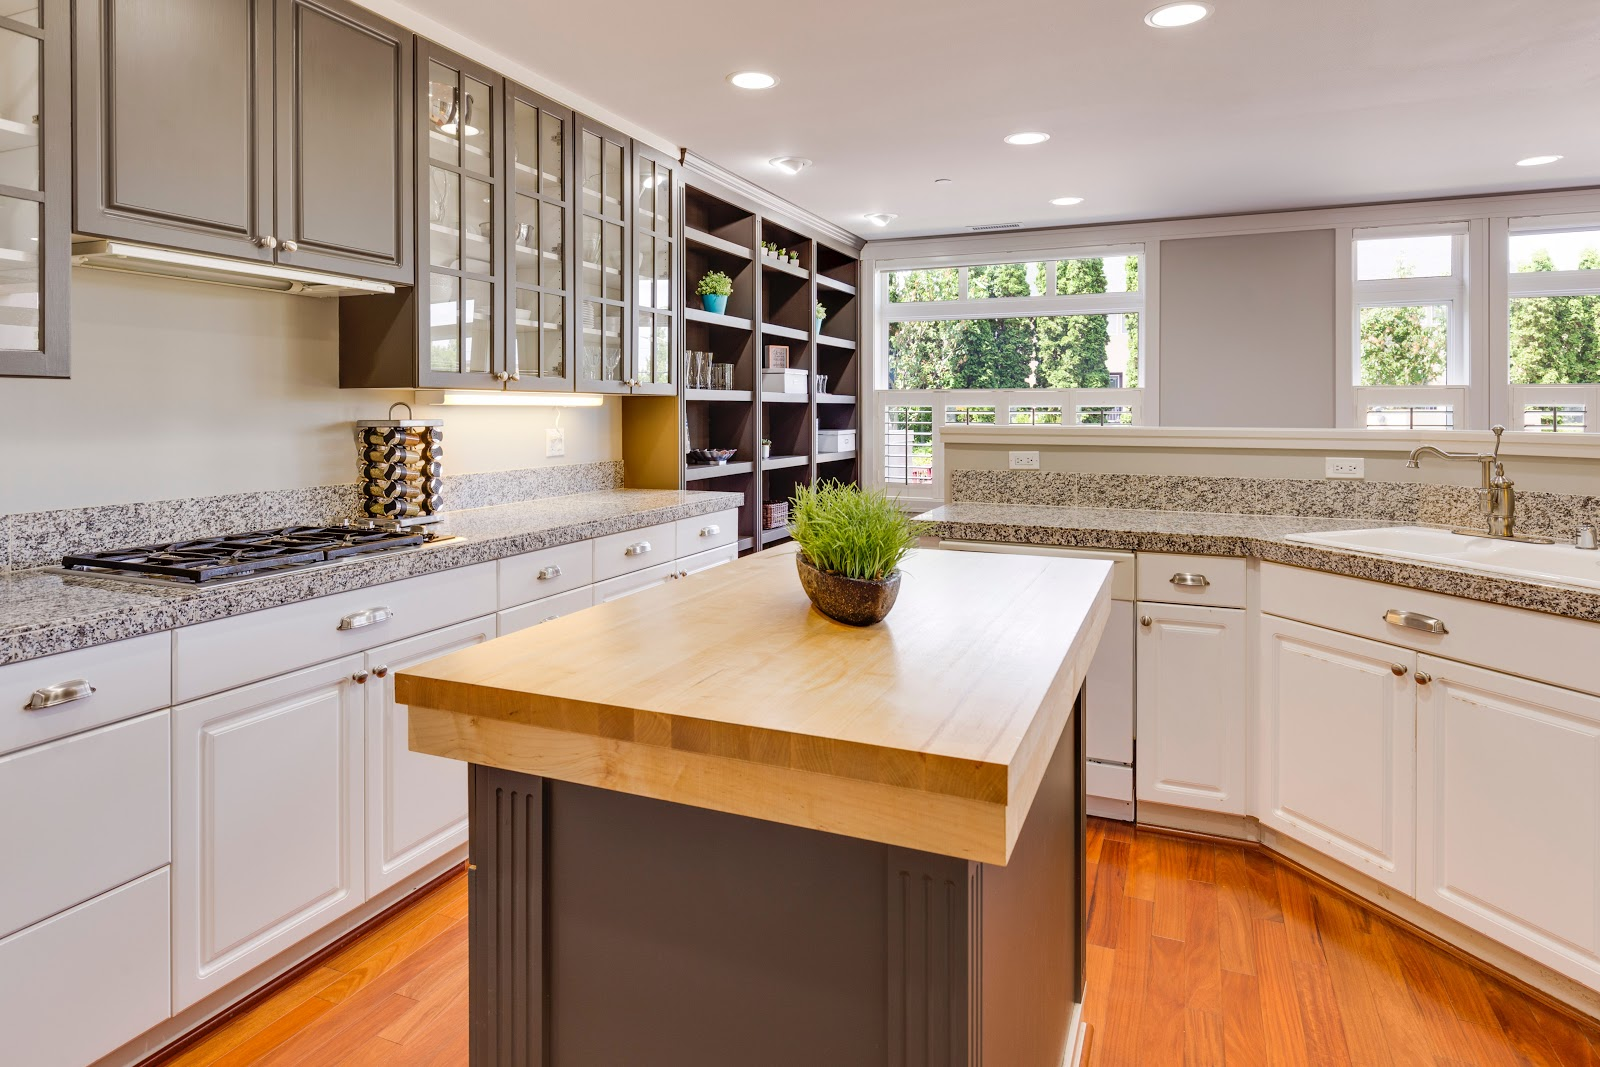 abrams home solutions prepare for a move decluttered kitchen clear shelving counter space chicago suburbs